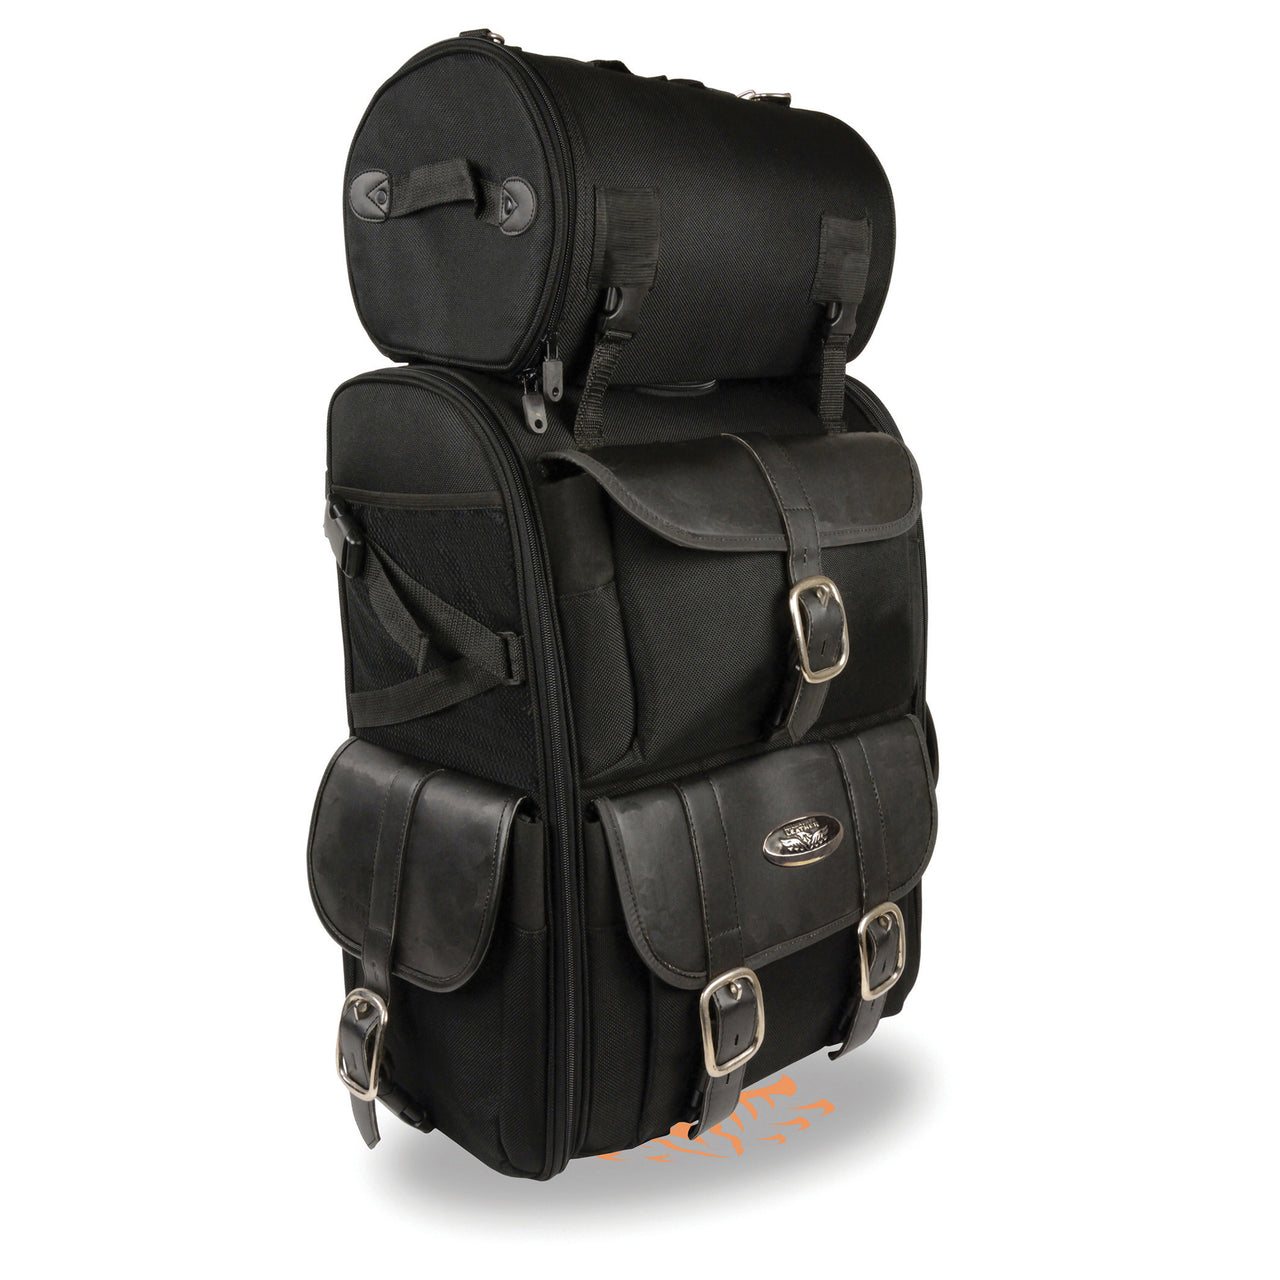 Extra Large Two Piece Nylon Touring Pack (15X21X10) - HighwayLeather